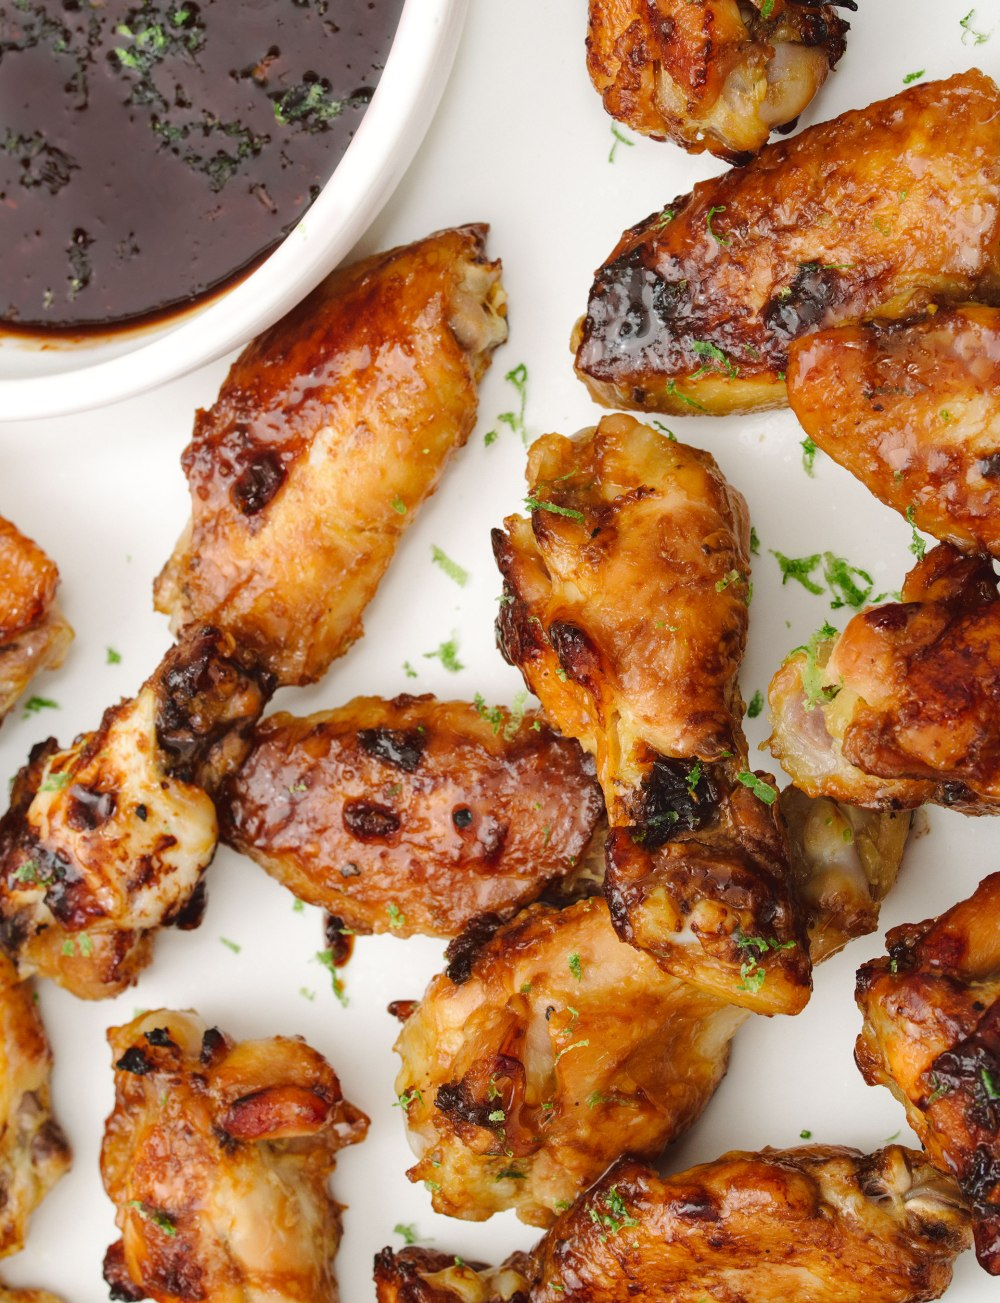 Honey-Ginger Chicken Wings (c) Rebecca Sanabria